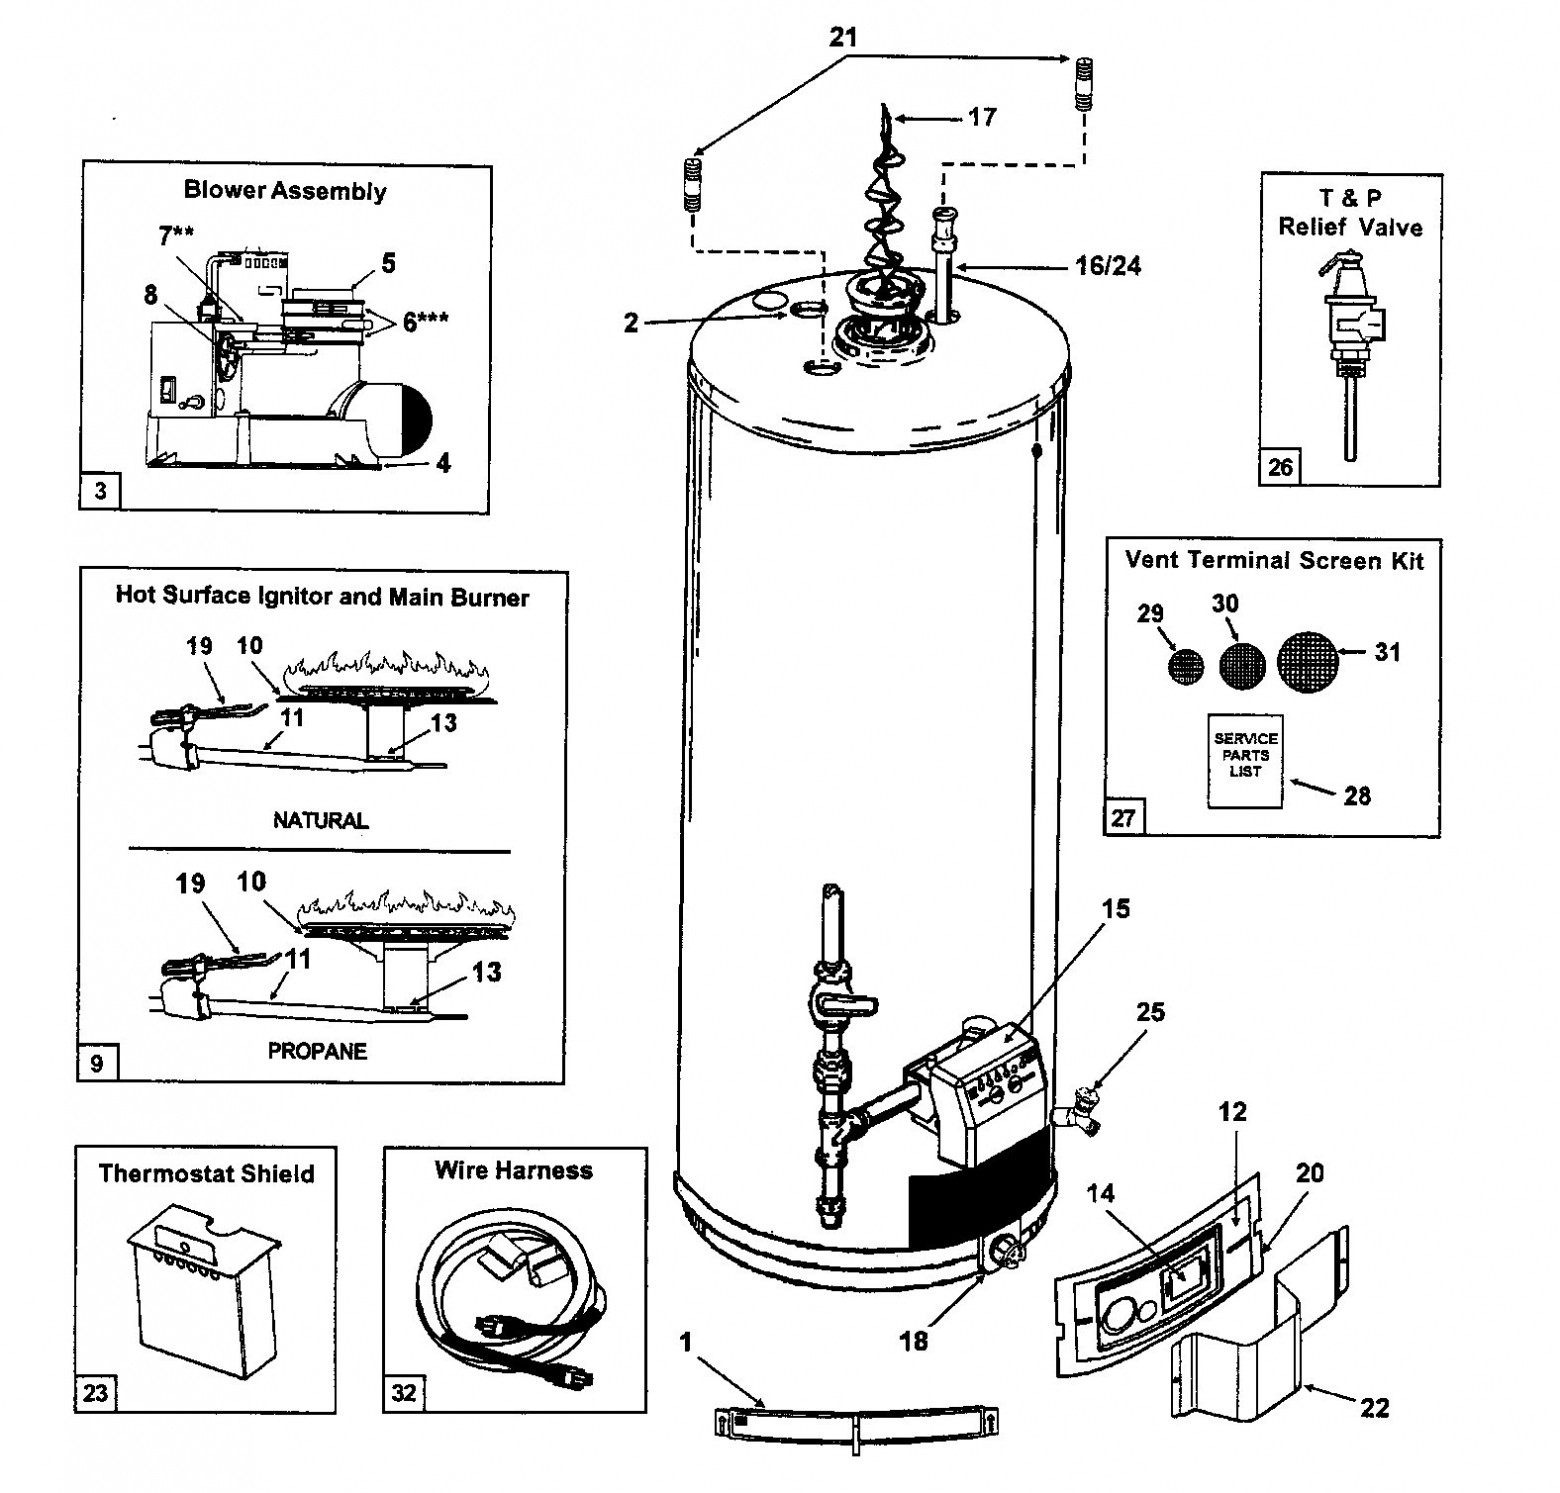 Gas Hot Water Heater Parts Diagram Gas Water Heater Diagram – Gas Water Heater Parts Diagram Air Of Gas Hot Water Heater Parts Diagram